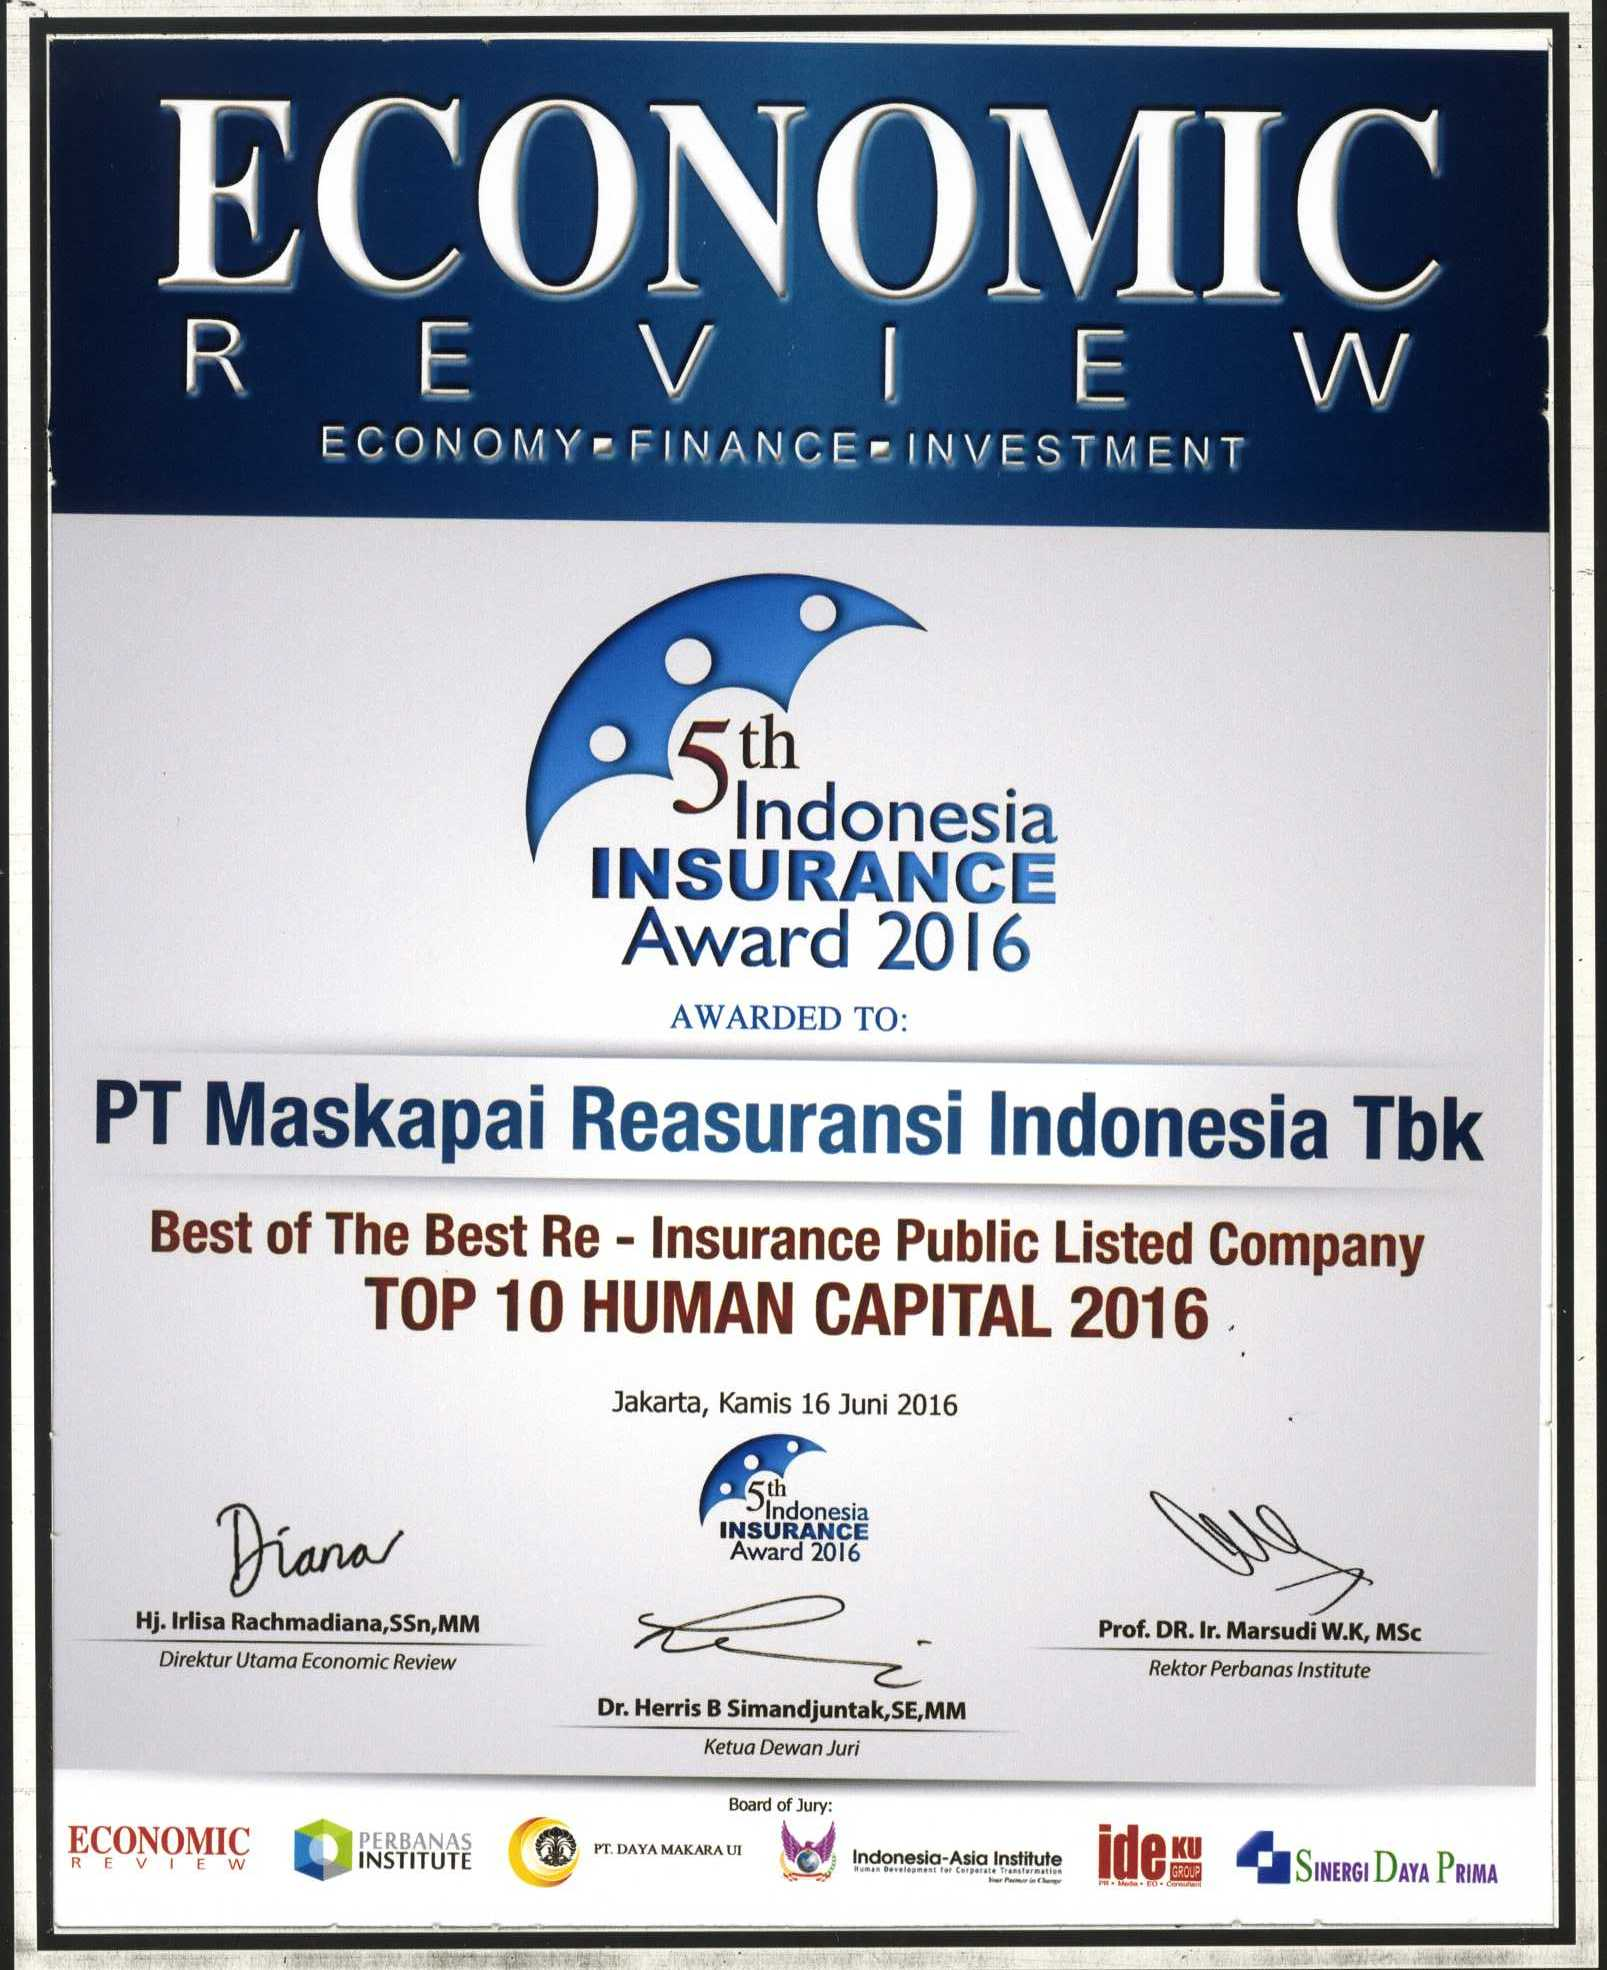 Majalah Economic Review : Top 10 Human Capital 2016 - 5th Indonesia Insurance Award 2016